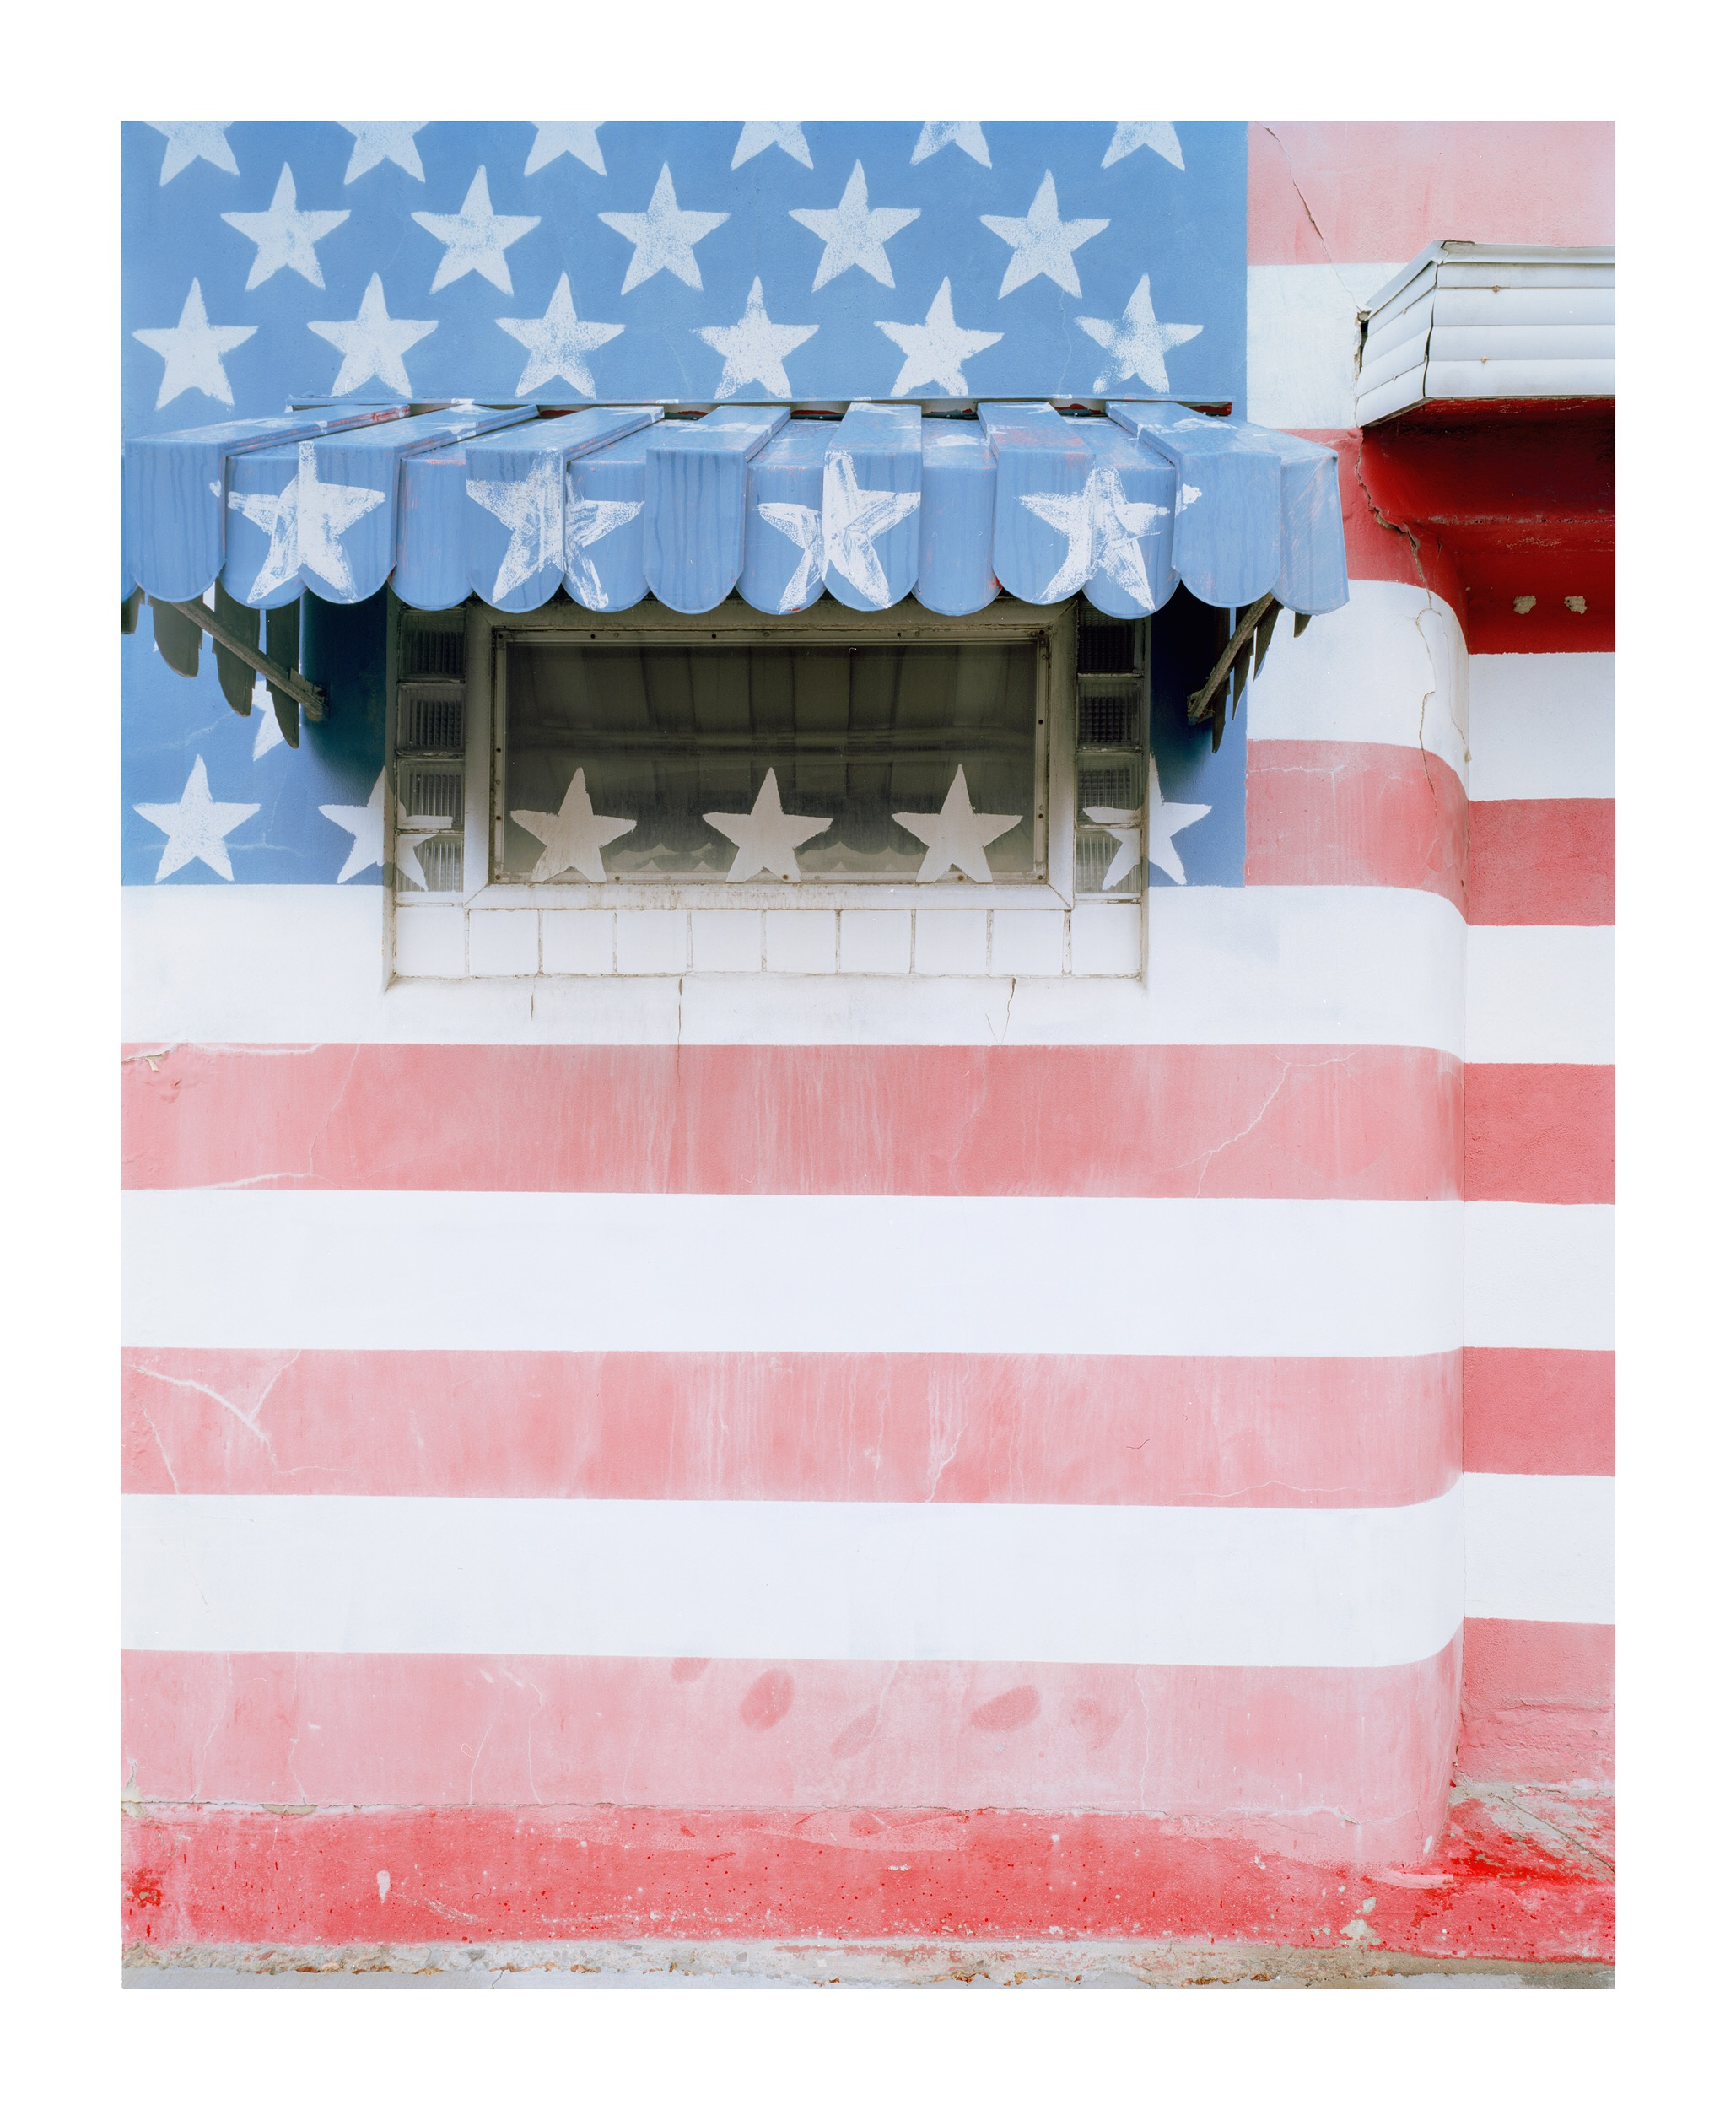 """""""304 Main St, Duryea, PA"""" , 2018 Archival pigment print, 20""""x16""""  Courtesy Yoav Friedlander & Carrie Able Gallery"""